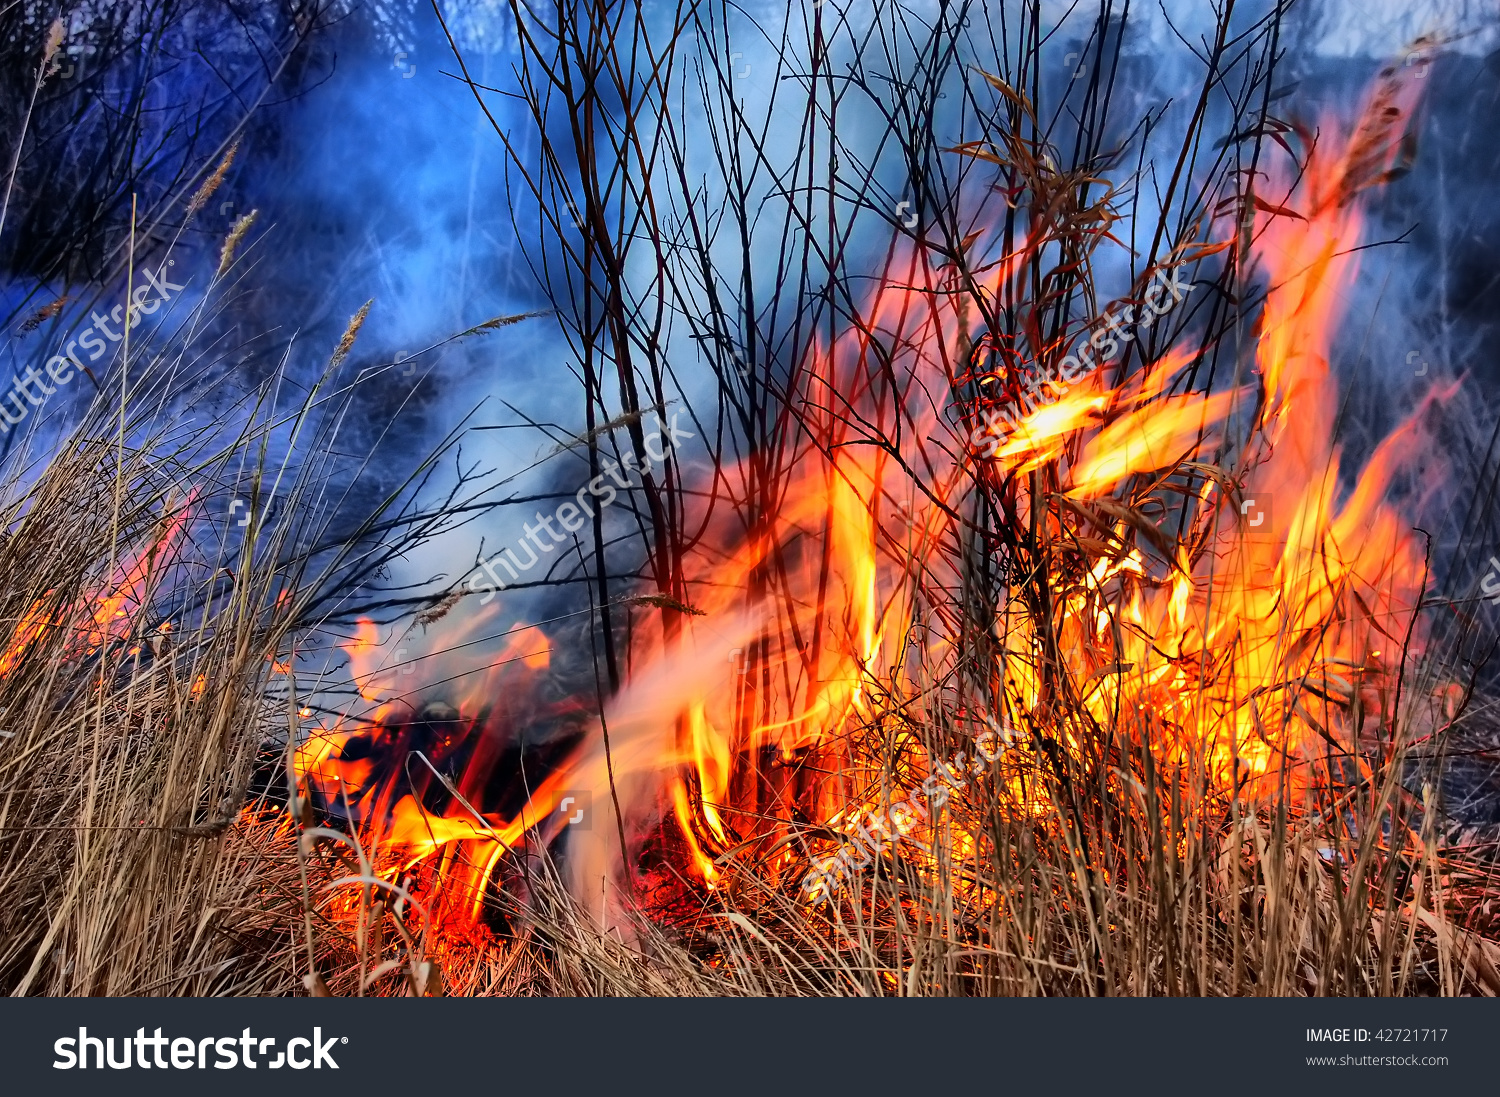 Hdr Fire Grass Stock Photo 42721717.